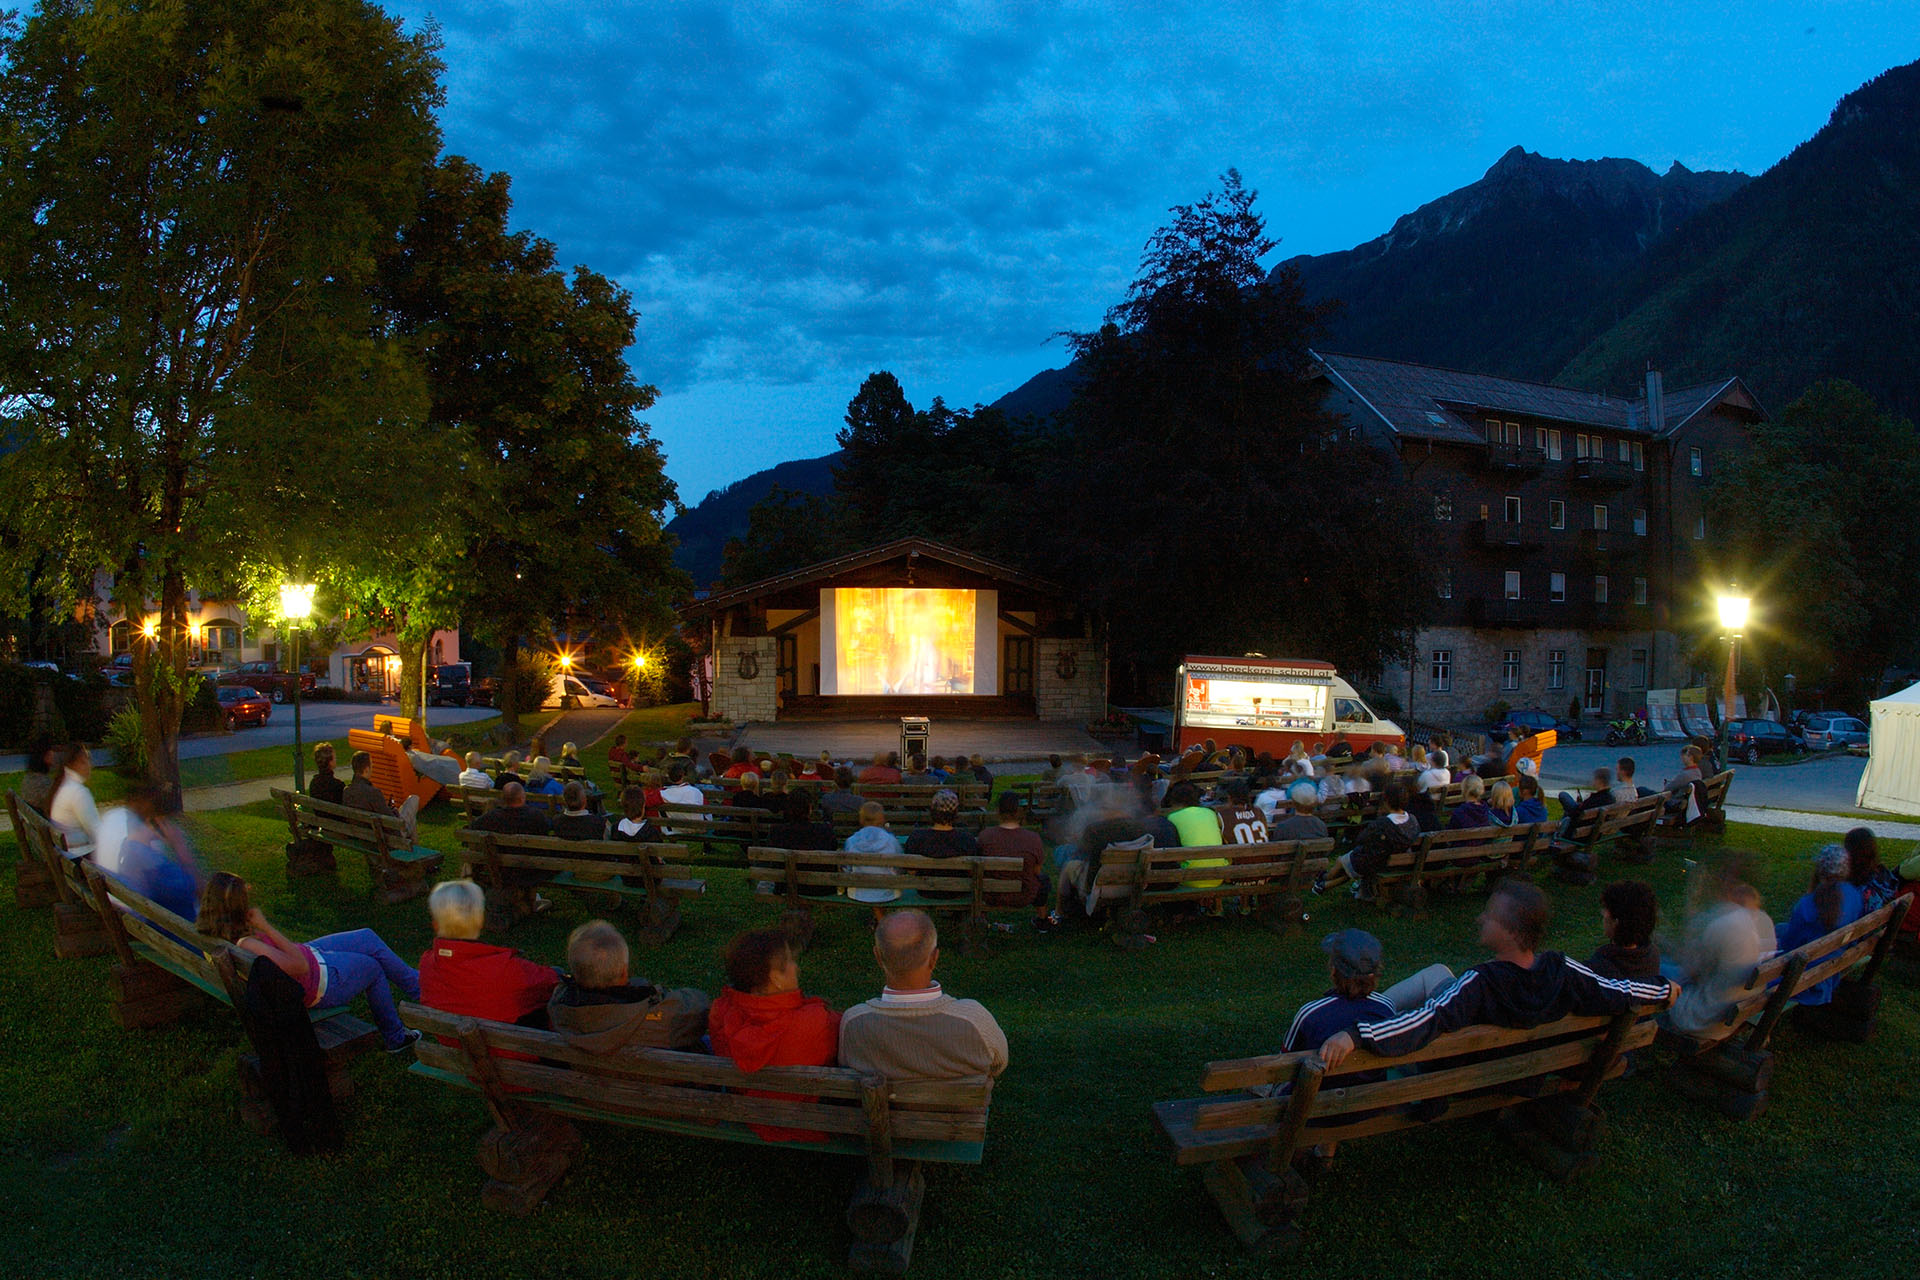 Fall-Kino in Krimml